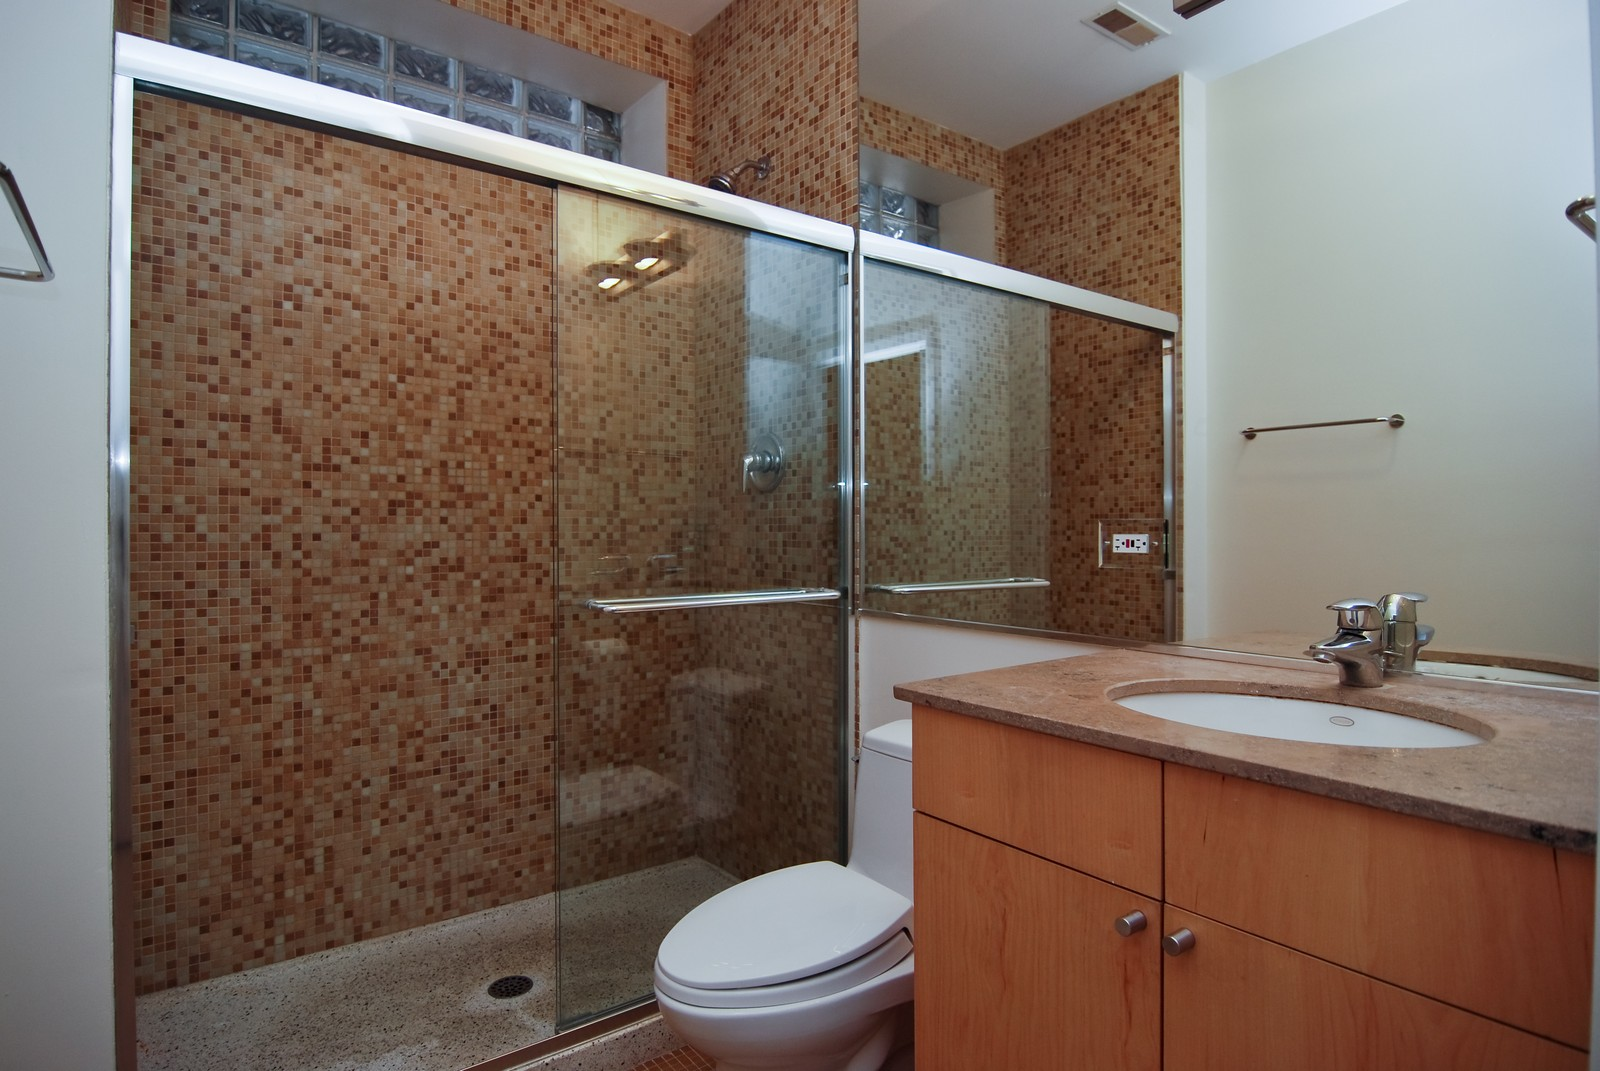 Real Estate Photography - 1526 S. Wabash, 300, Chicago, IL, 60605 - Bathroom